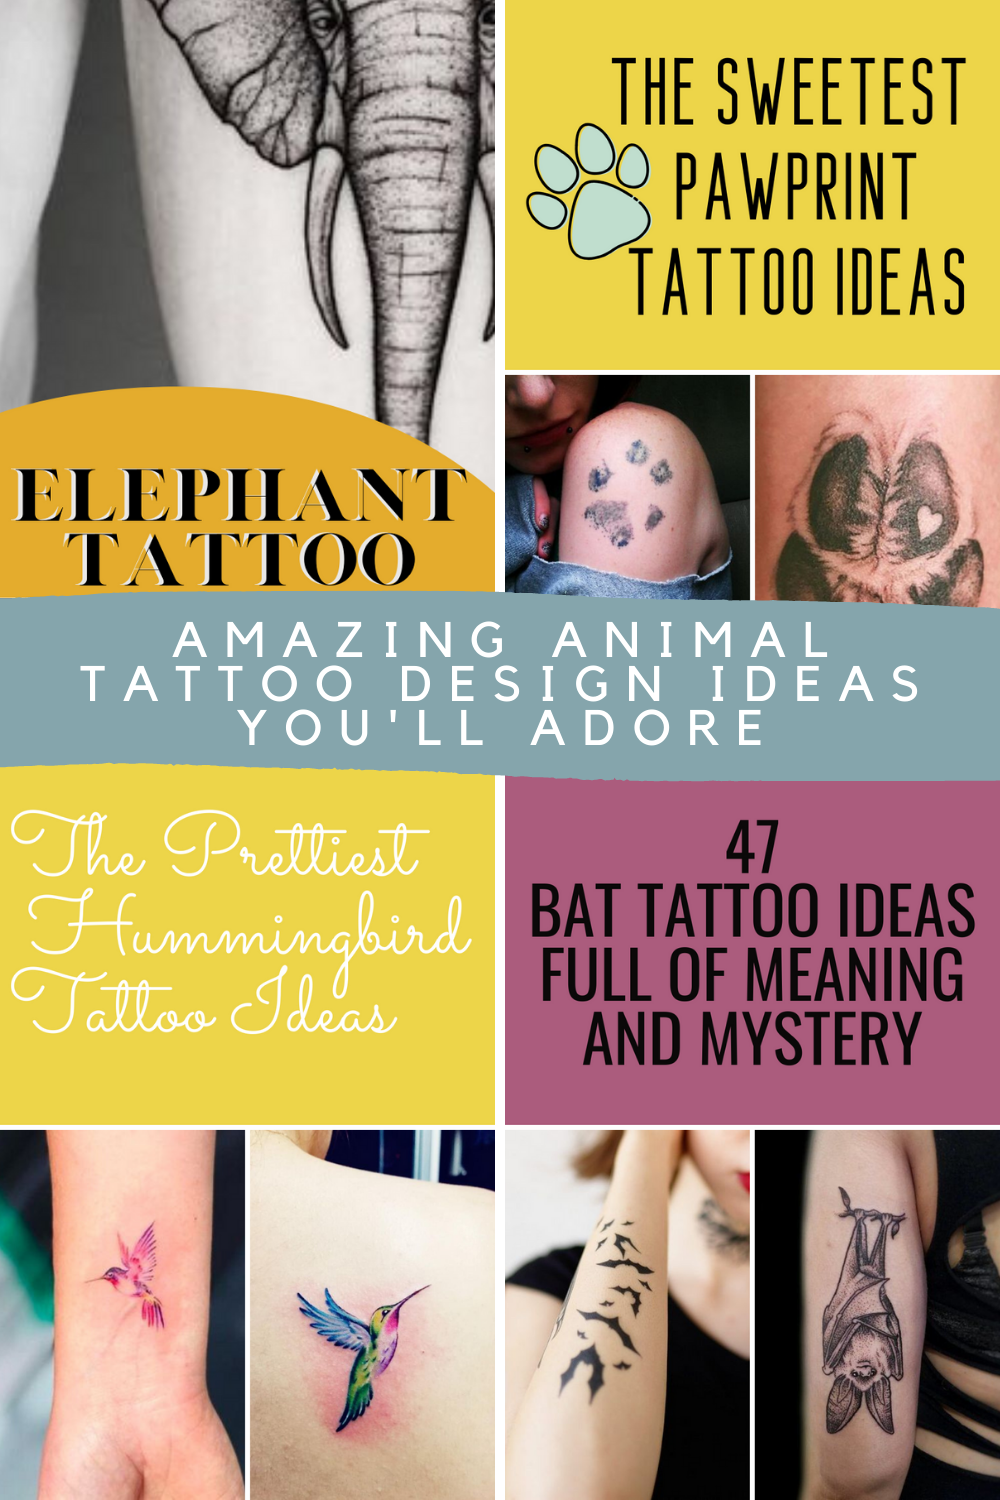 Animal Tattoos Meanings & Designs